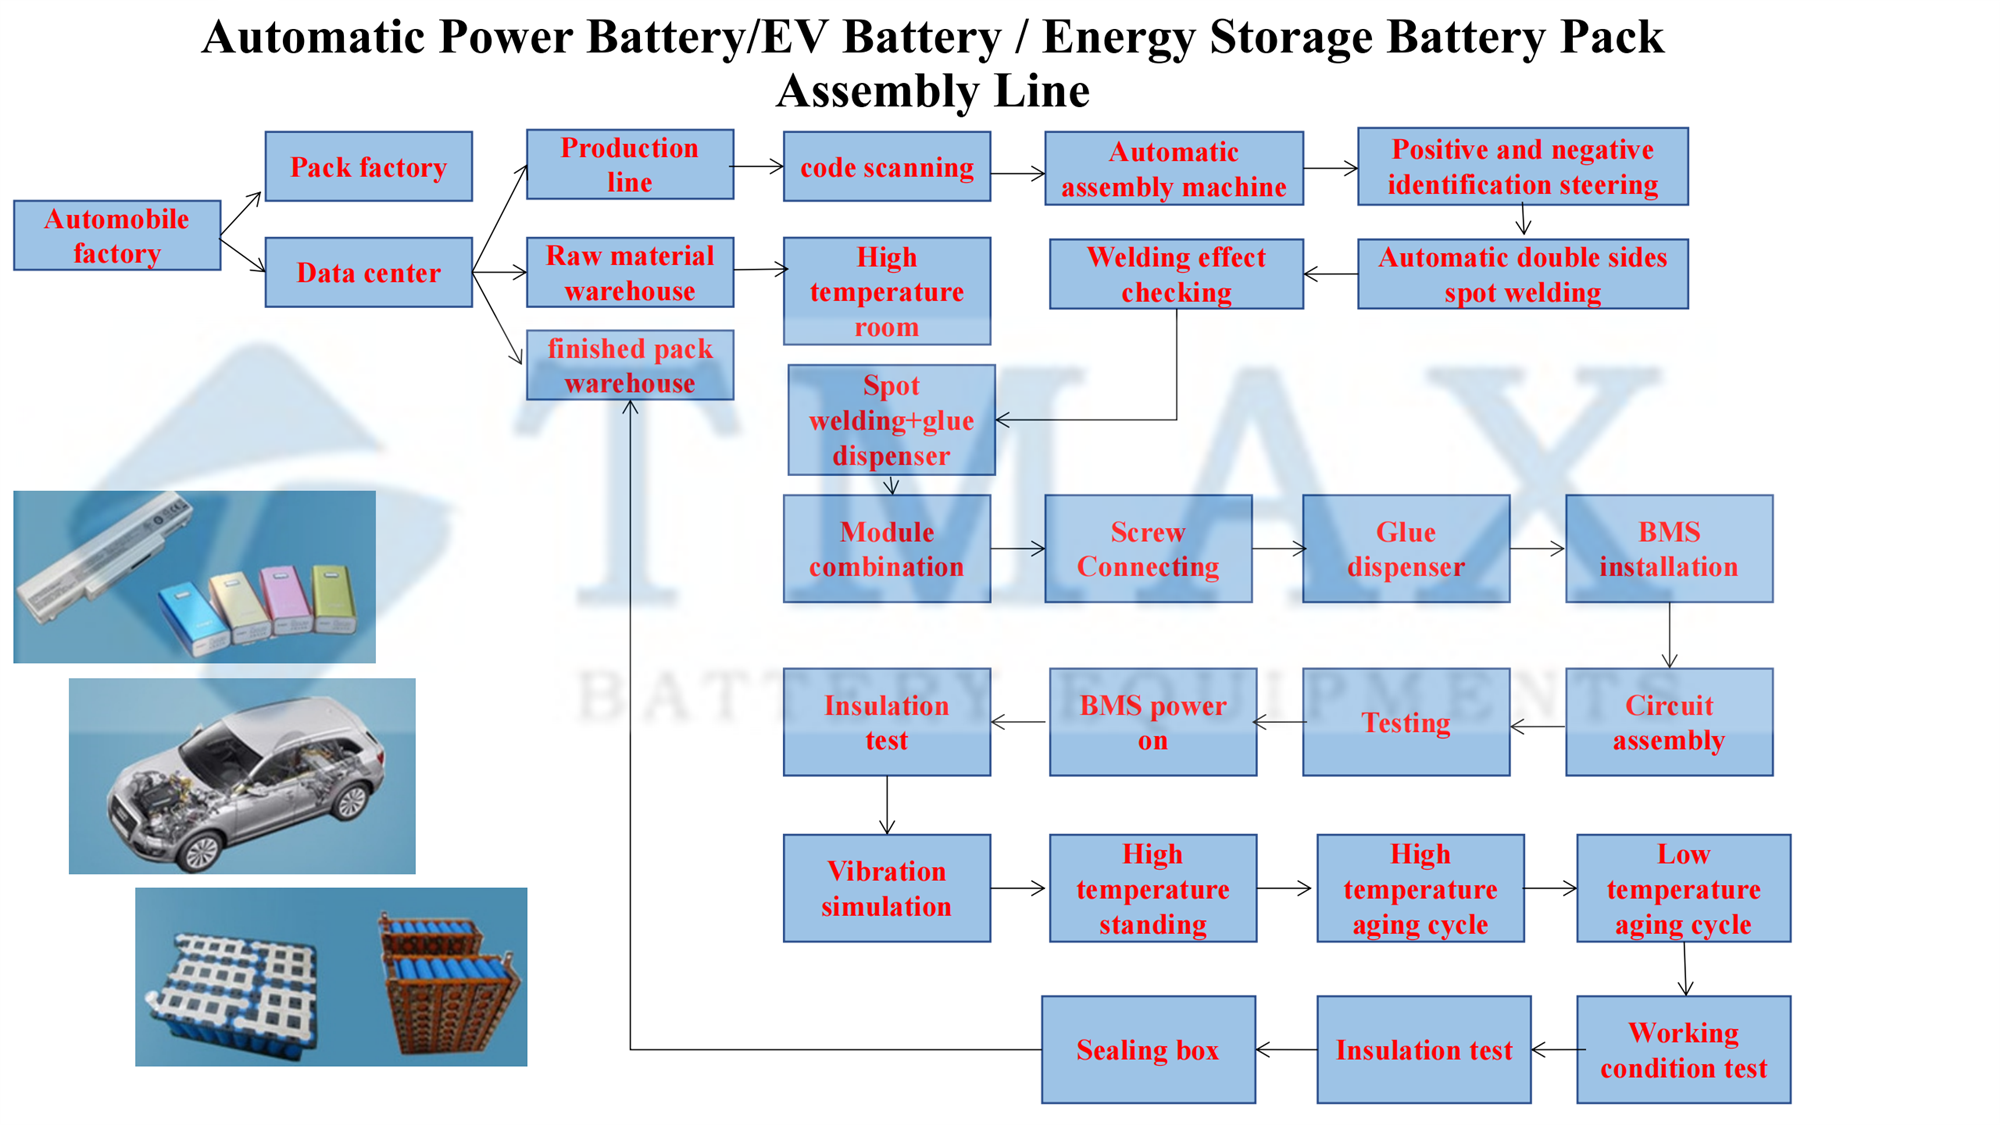 Energy Storage Battery Pack Assembly Line